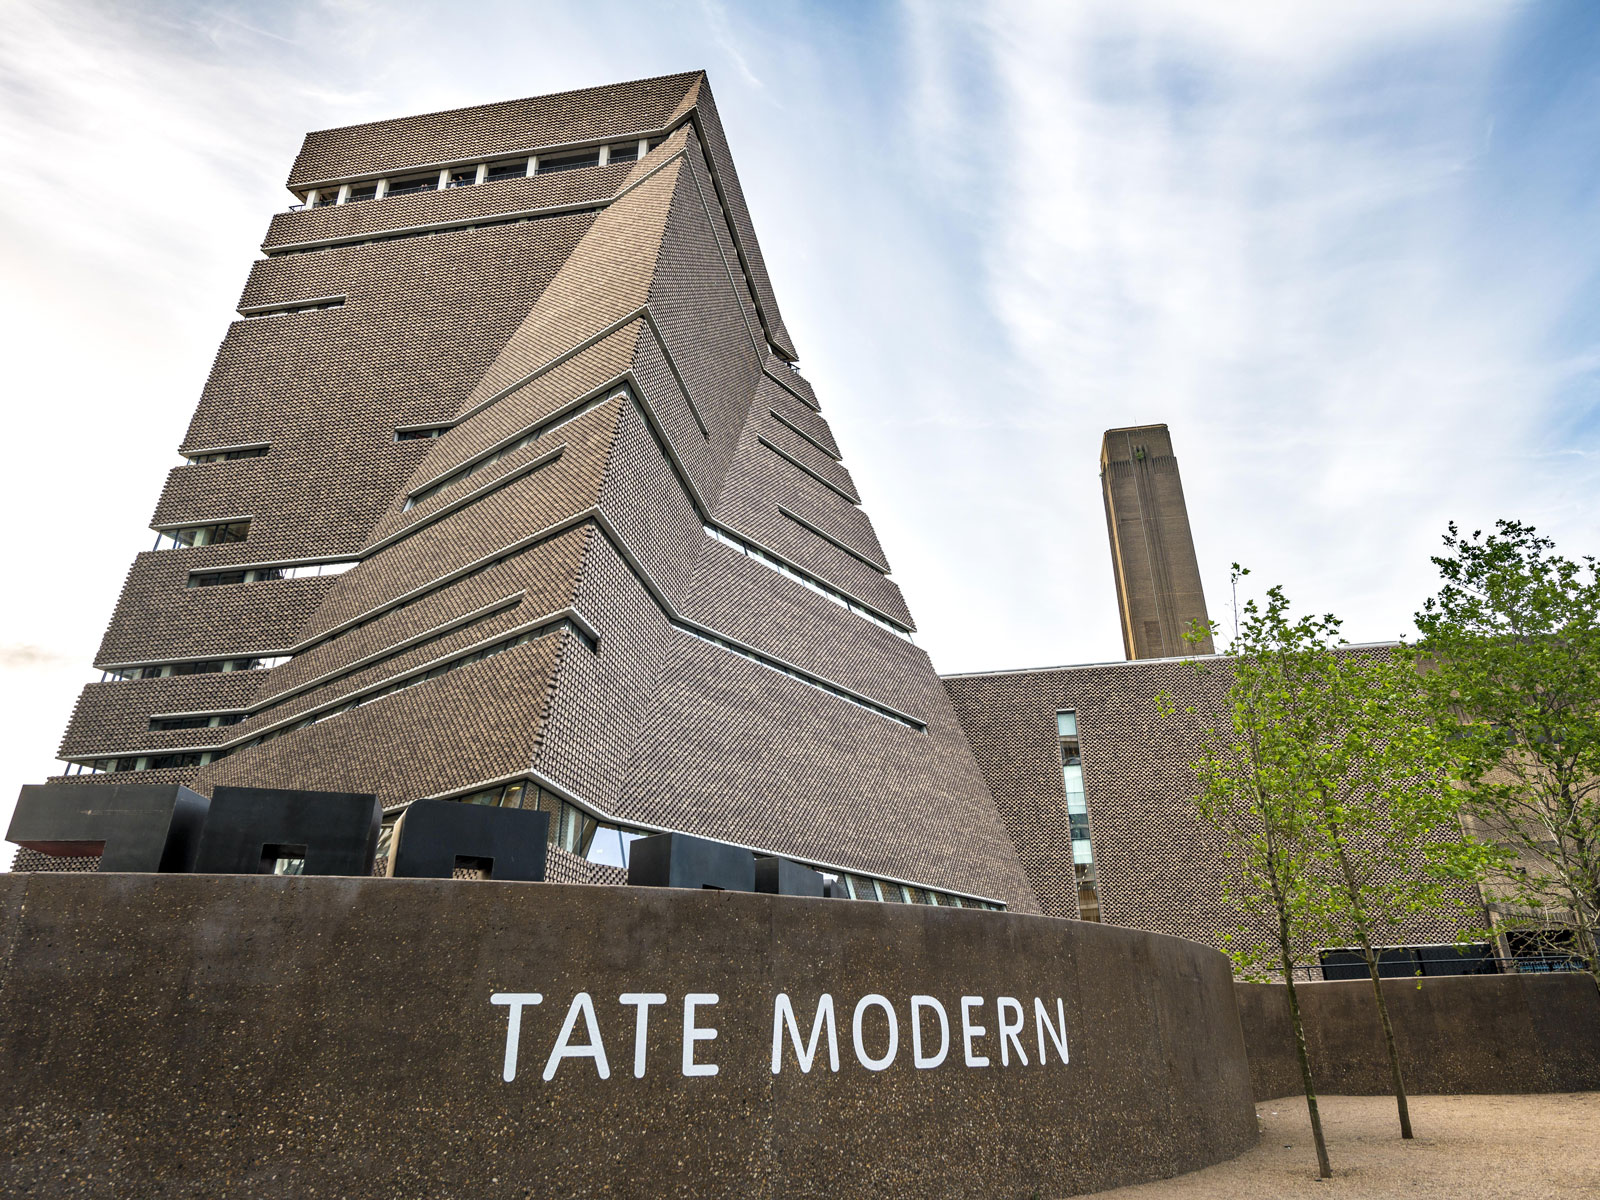 London's Tate Modern to Display Beer Can Art